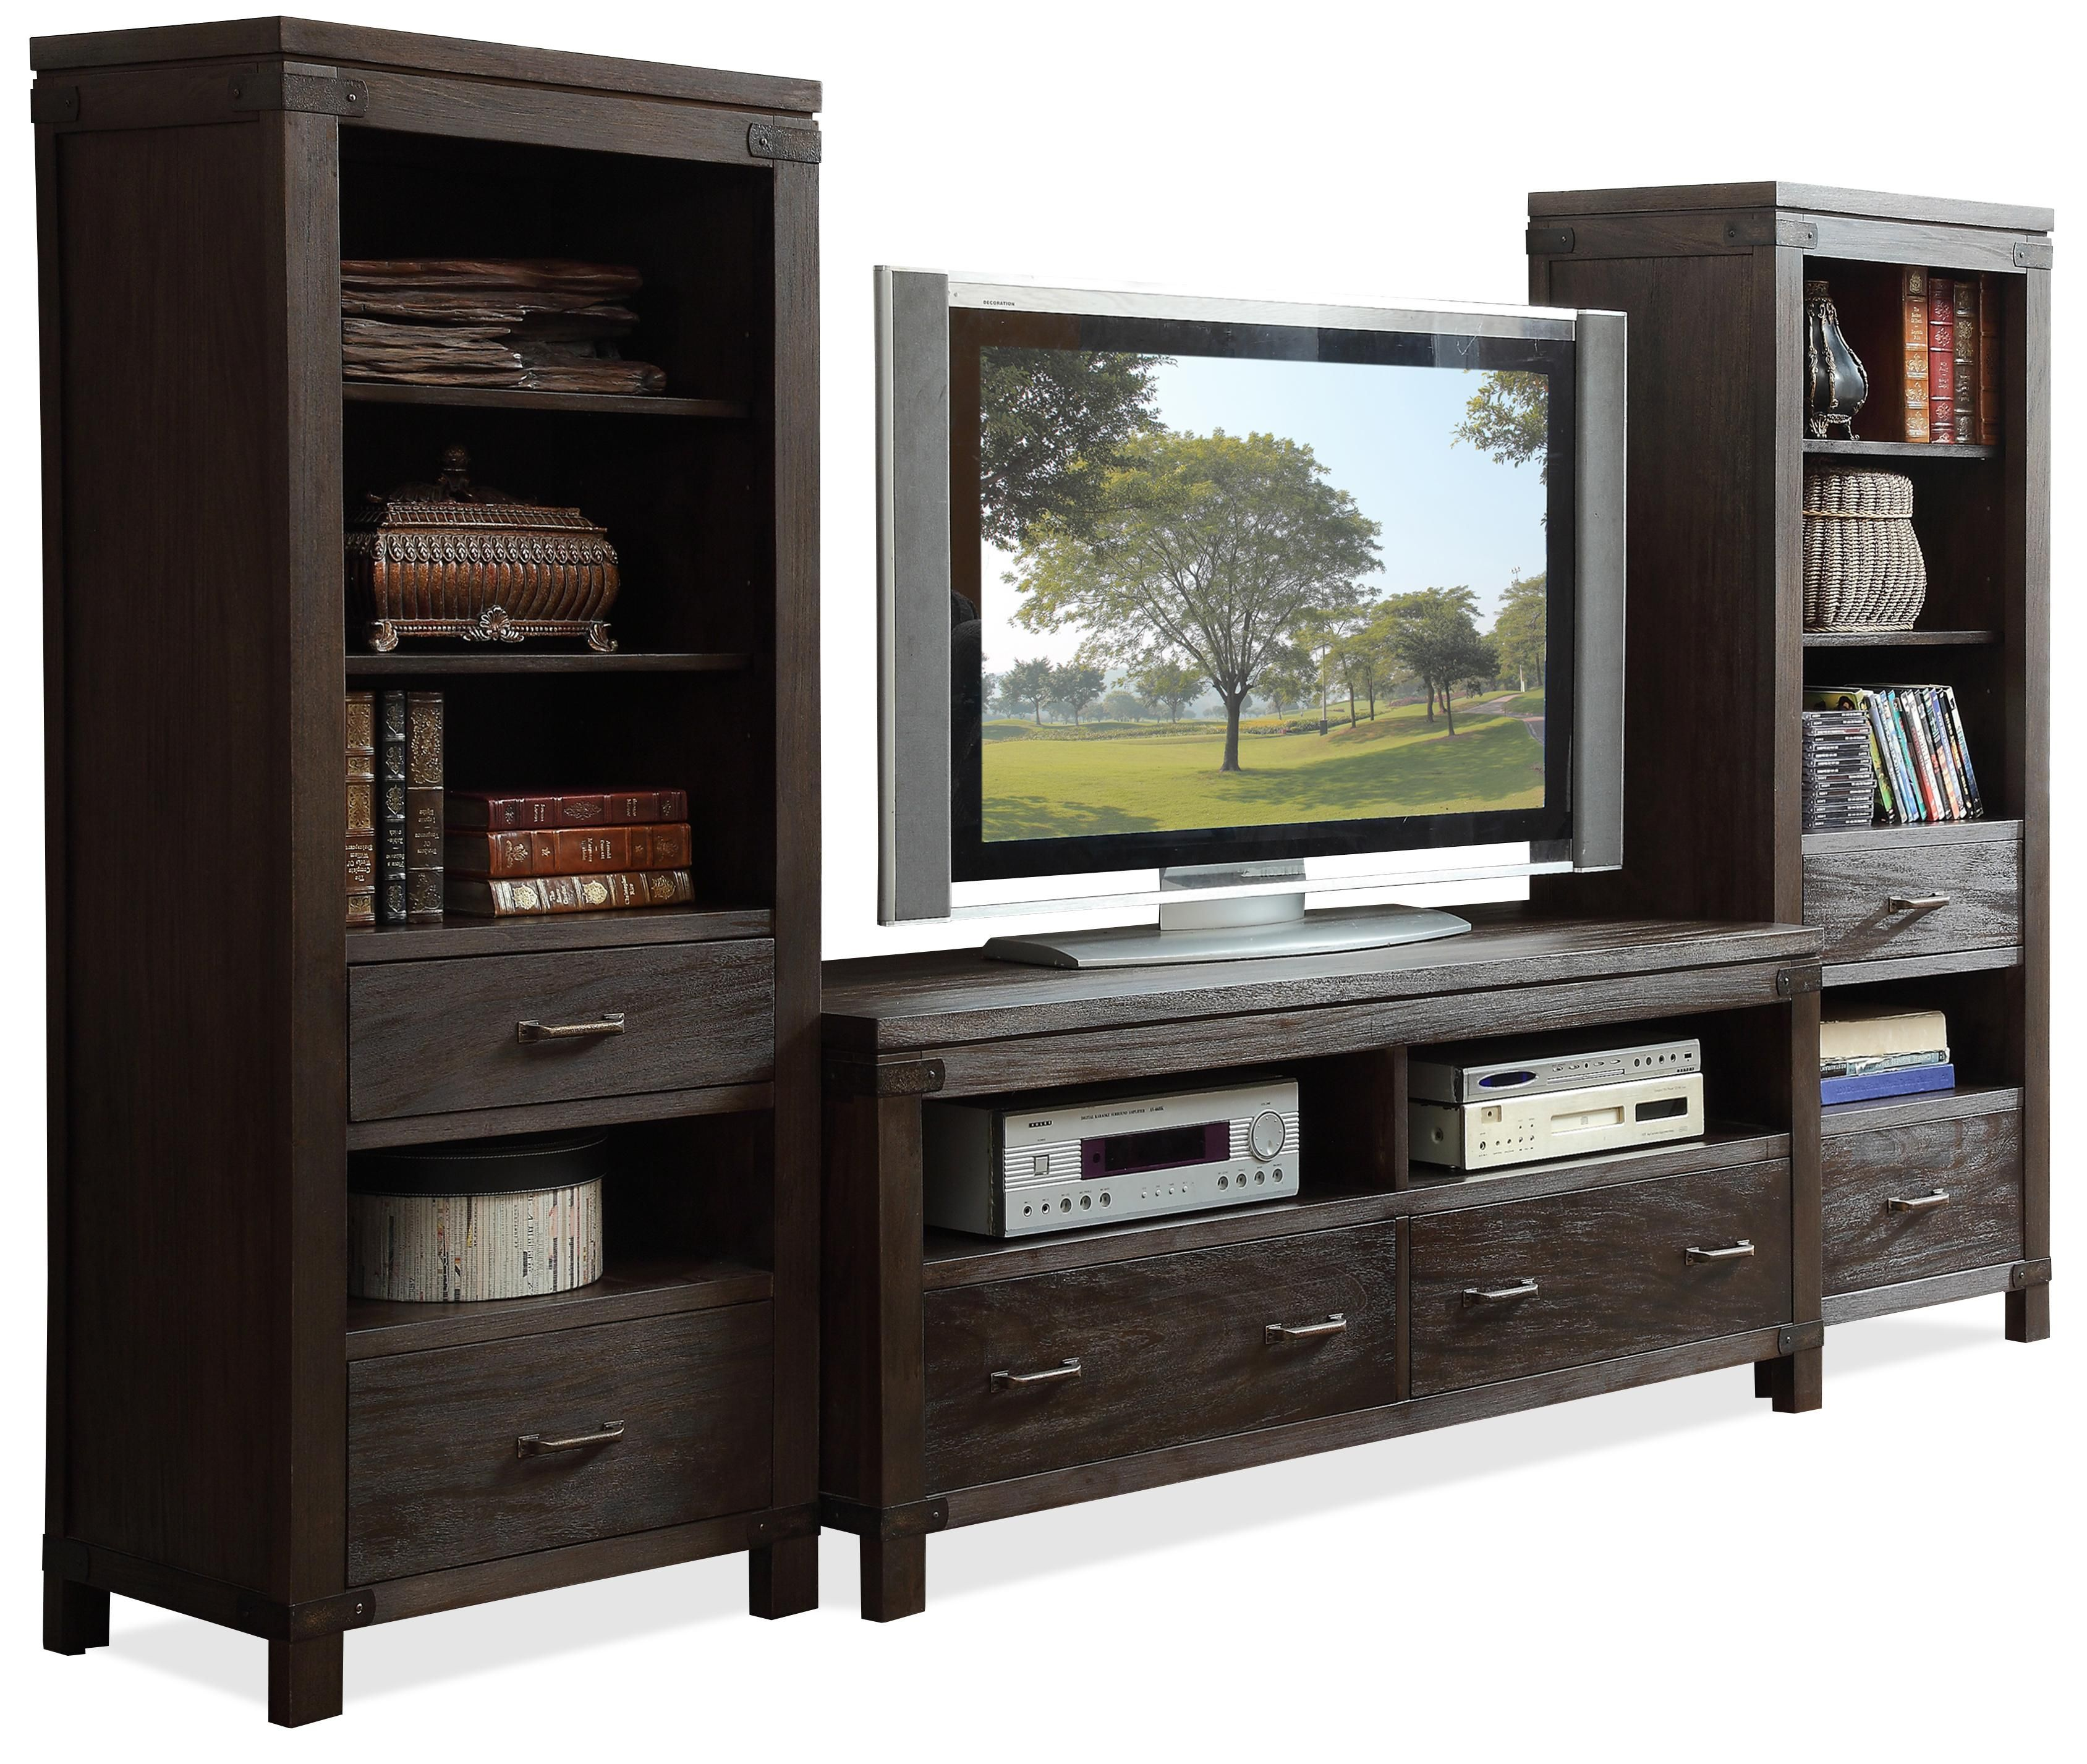 Promenade Wall Entertainent Unit By Riverside Furniture